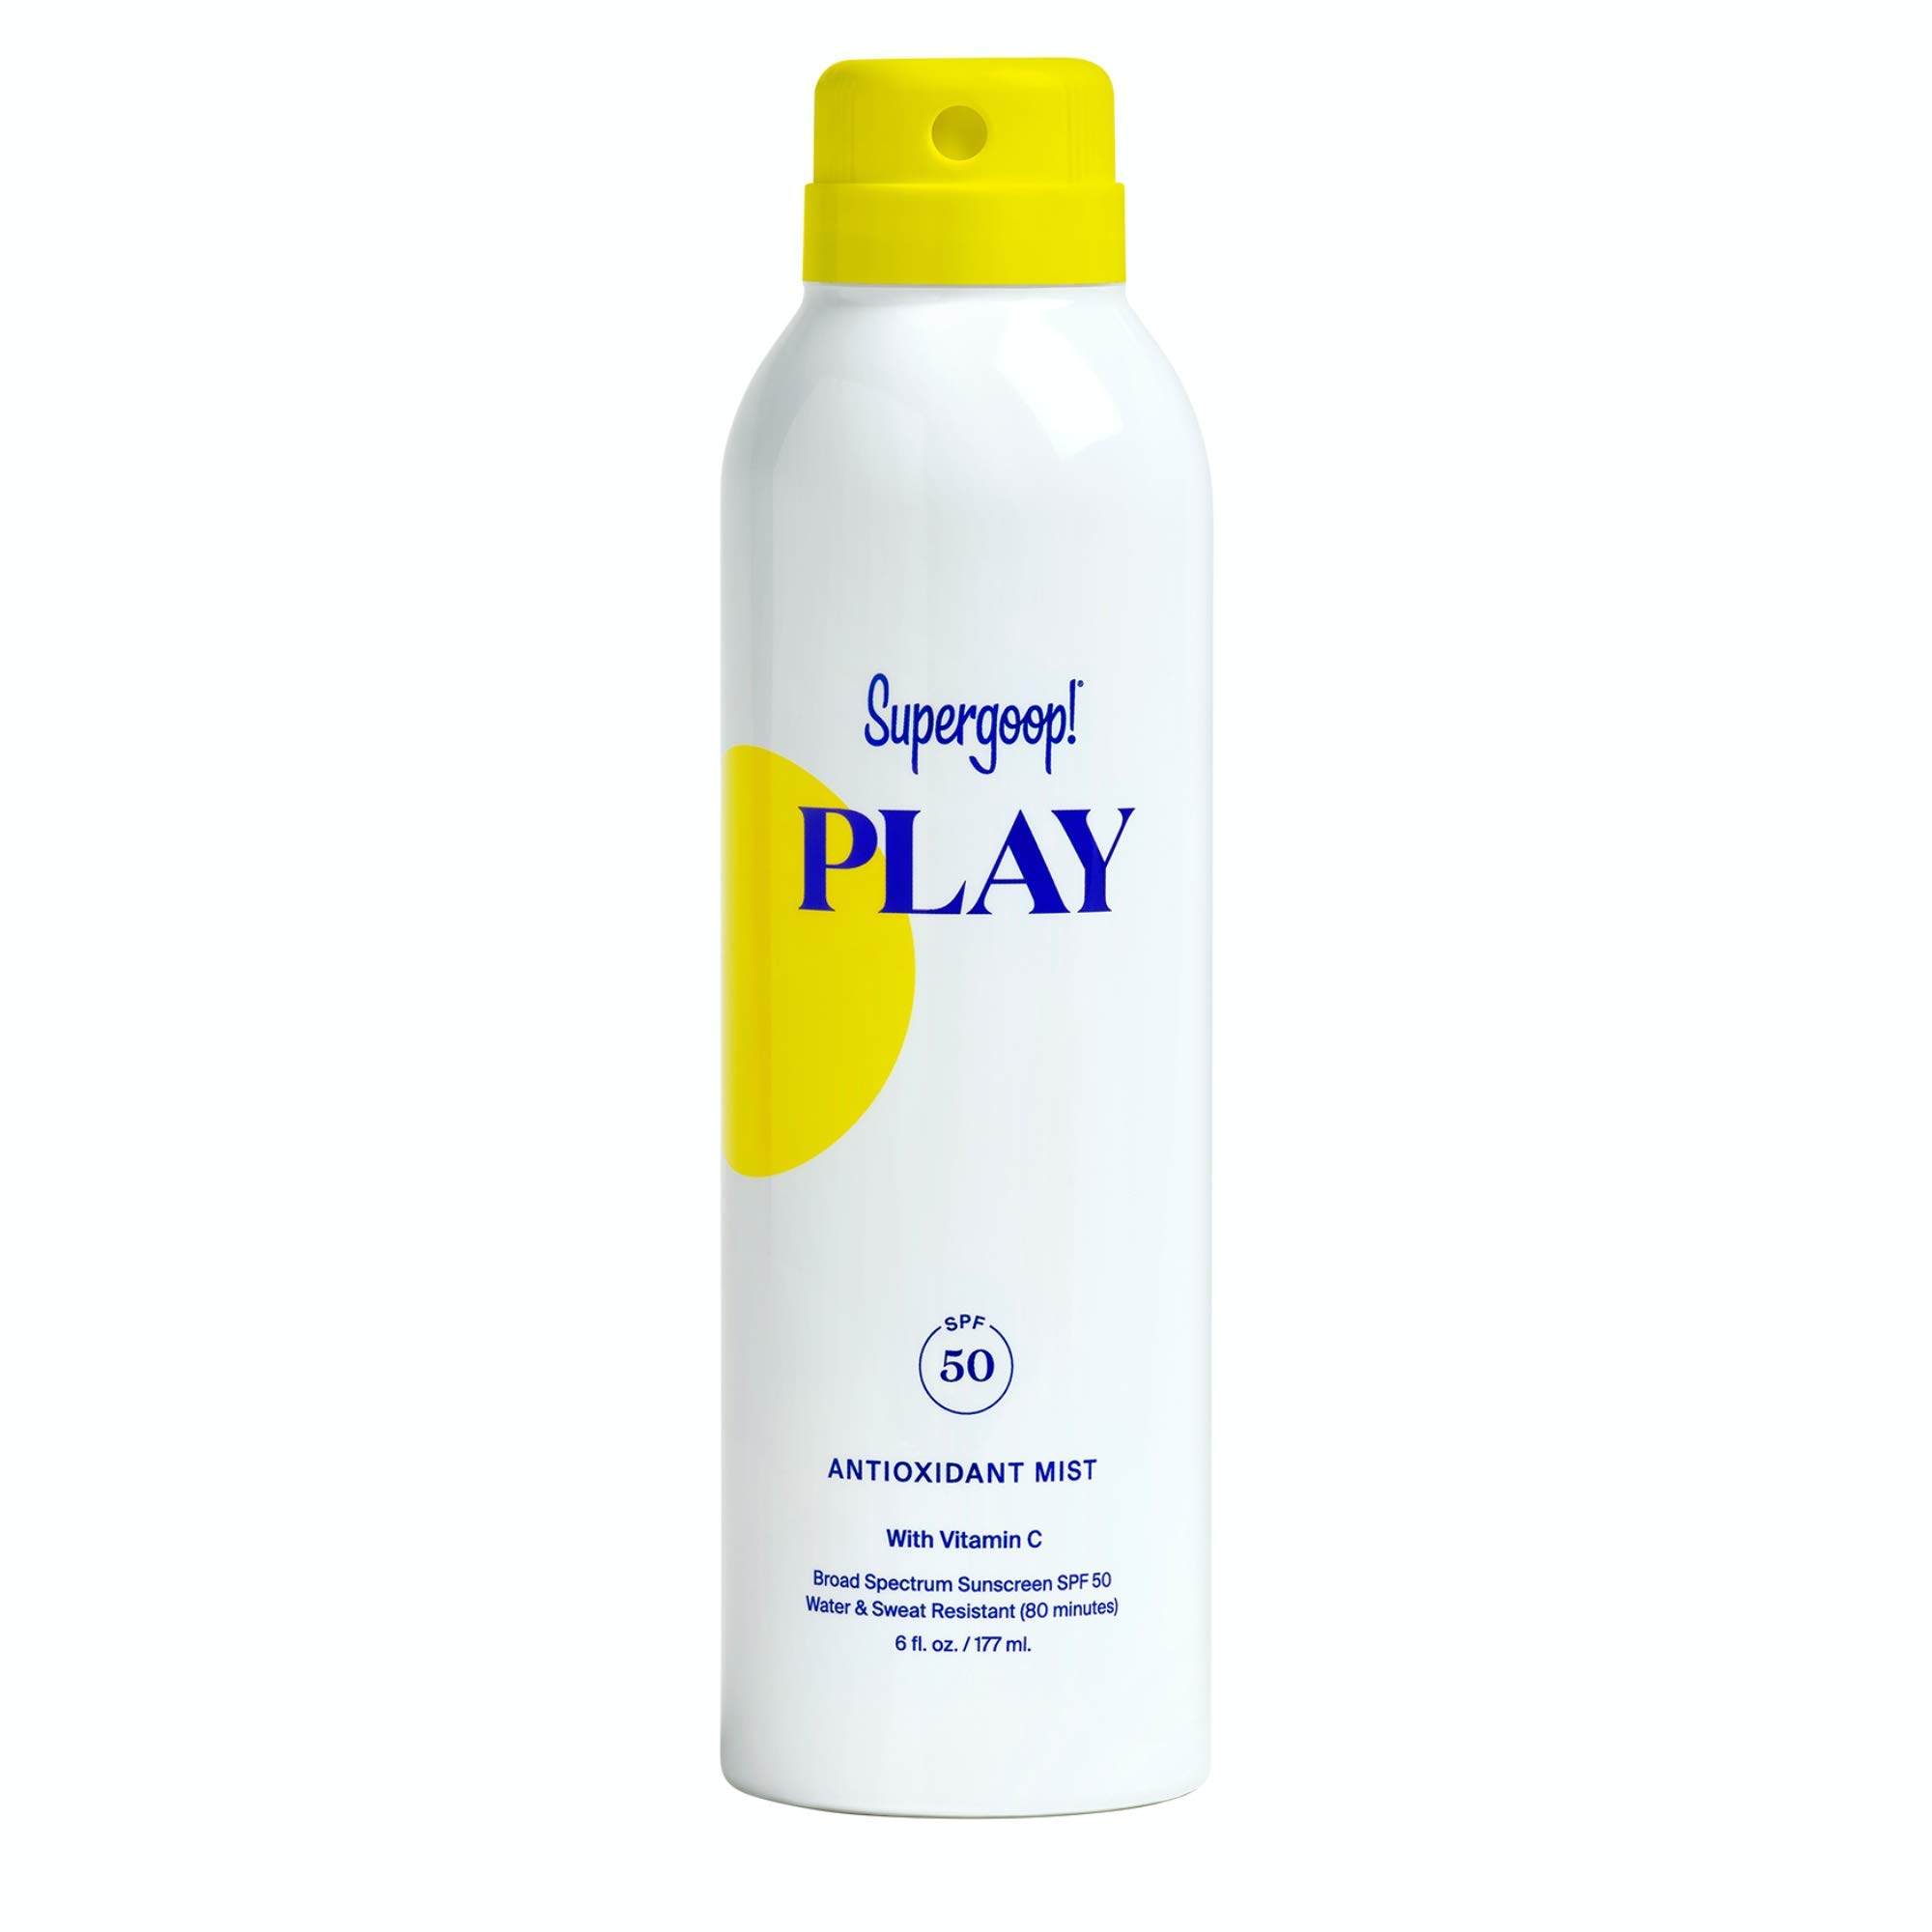 Supergoop! PLAY Antioxidant-Infused Body Mist w/Vitamin C, 6 fl oz - SPF 50 PA++++ Reef-Safe, Broad Spectrum Sunscreen - Body Spray for Sensitive Skin - Clean Ingredients - Great for Active Days